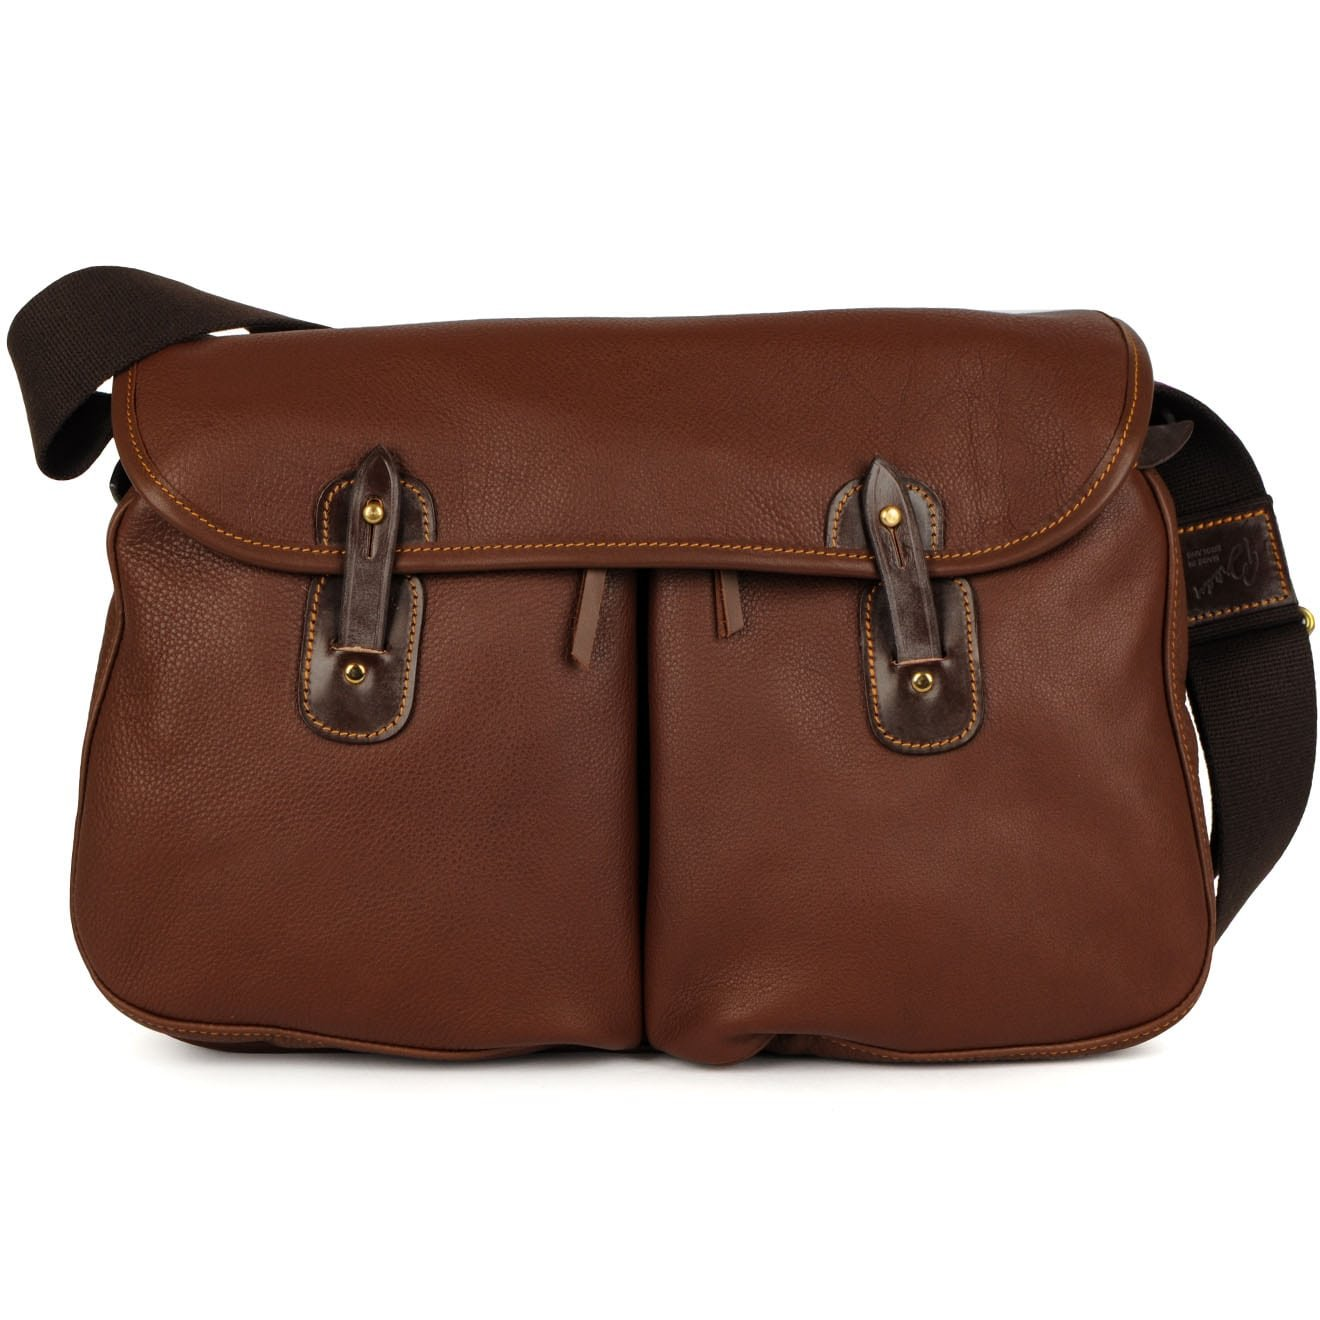 Brady Gelderburn Bag Chestnut Leather